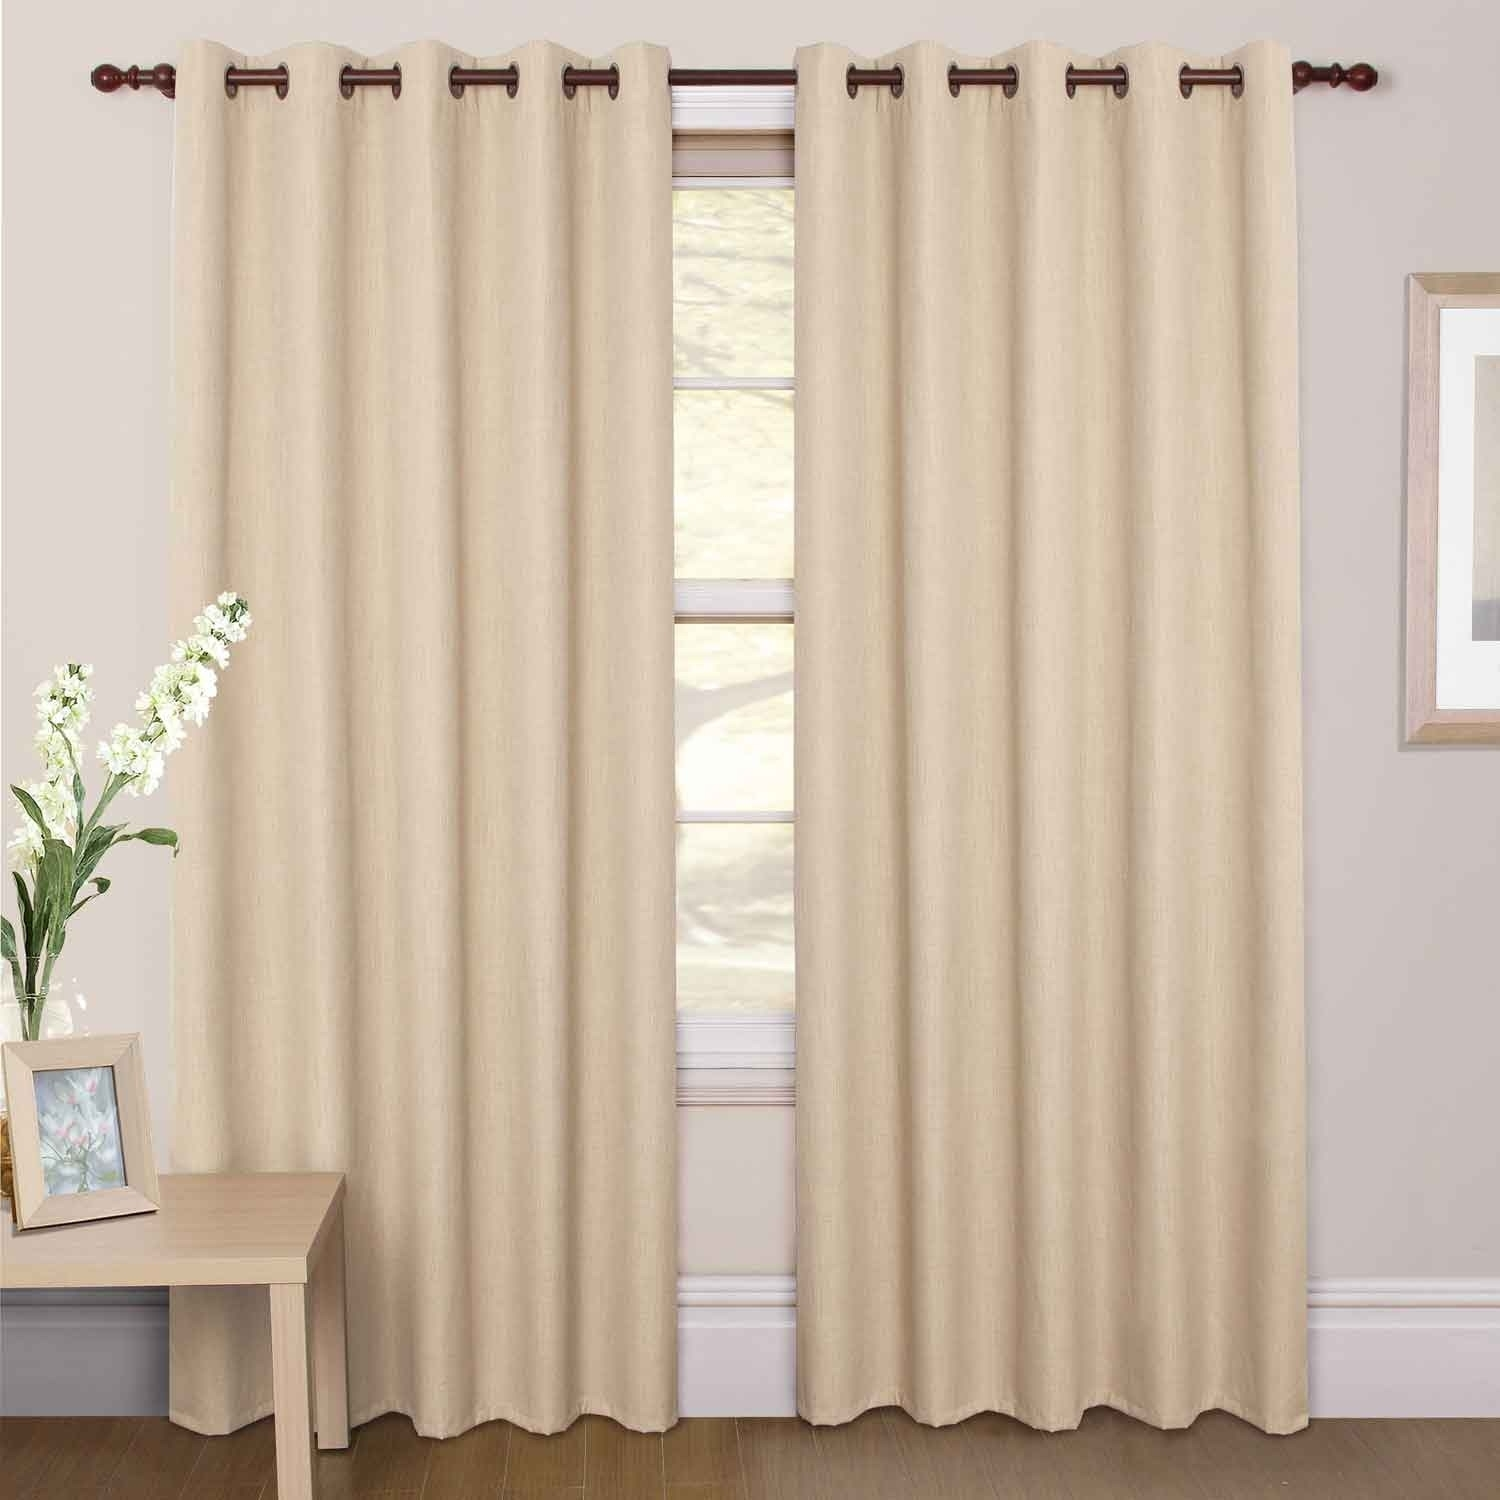 Curtain Blackout Curtains 96 Inches Long Curtains In 96 Inches Long Curtains (Image 4 of 25)